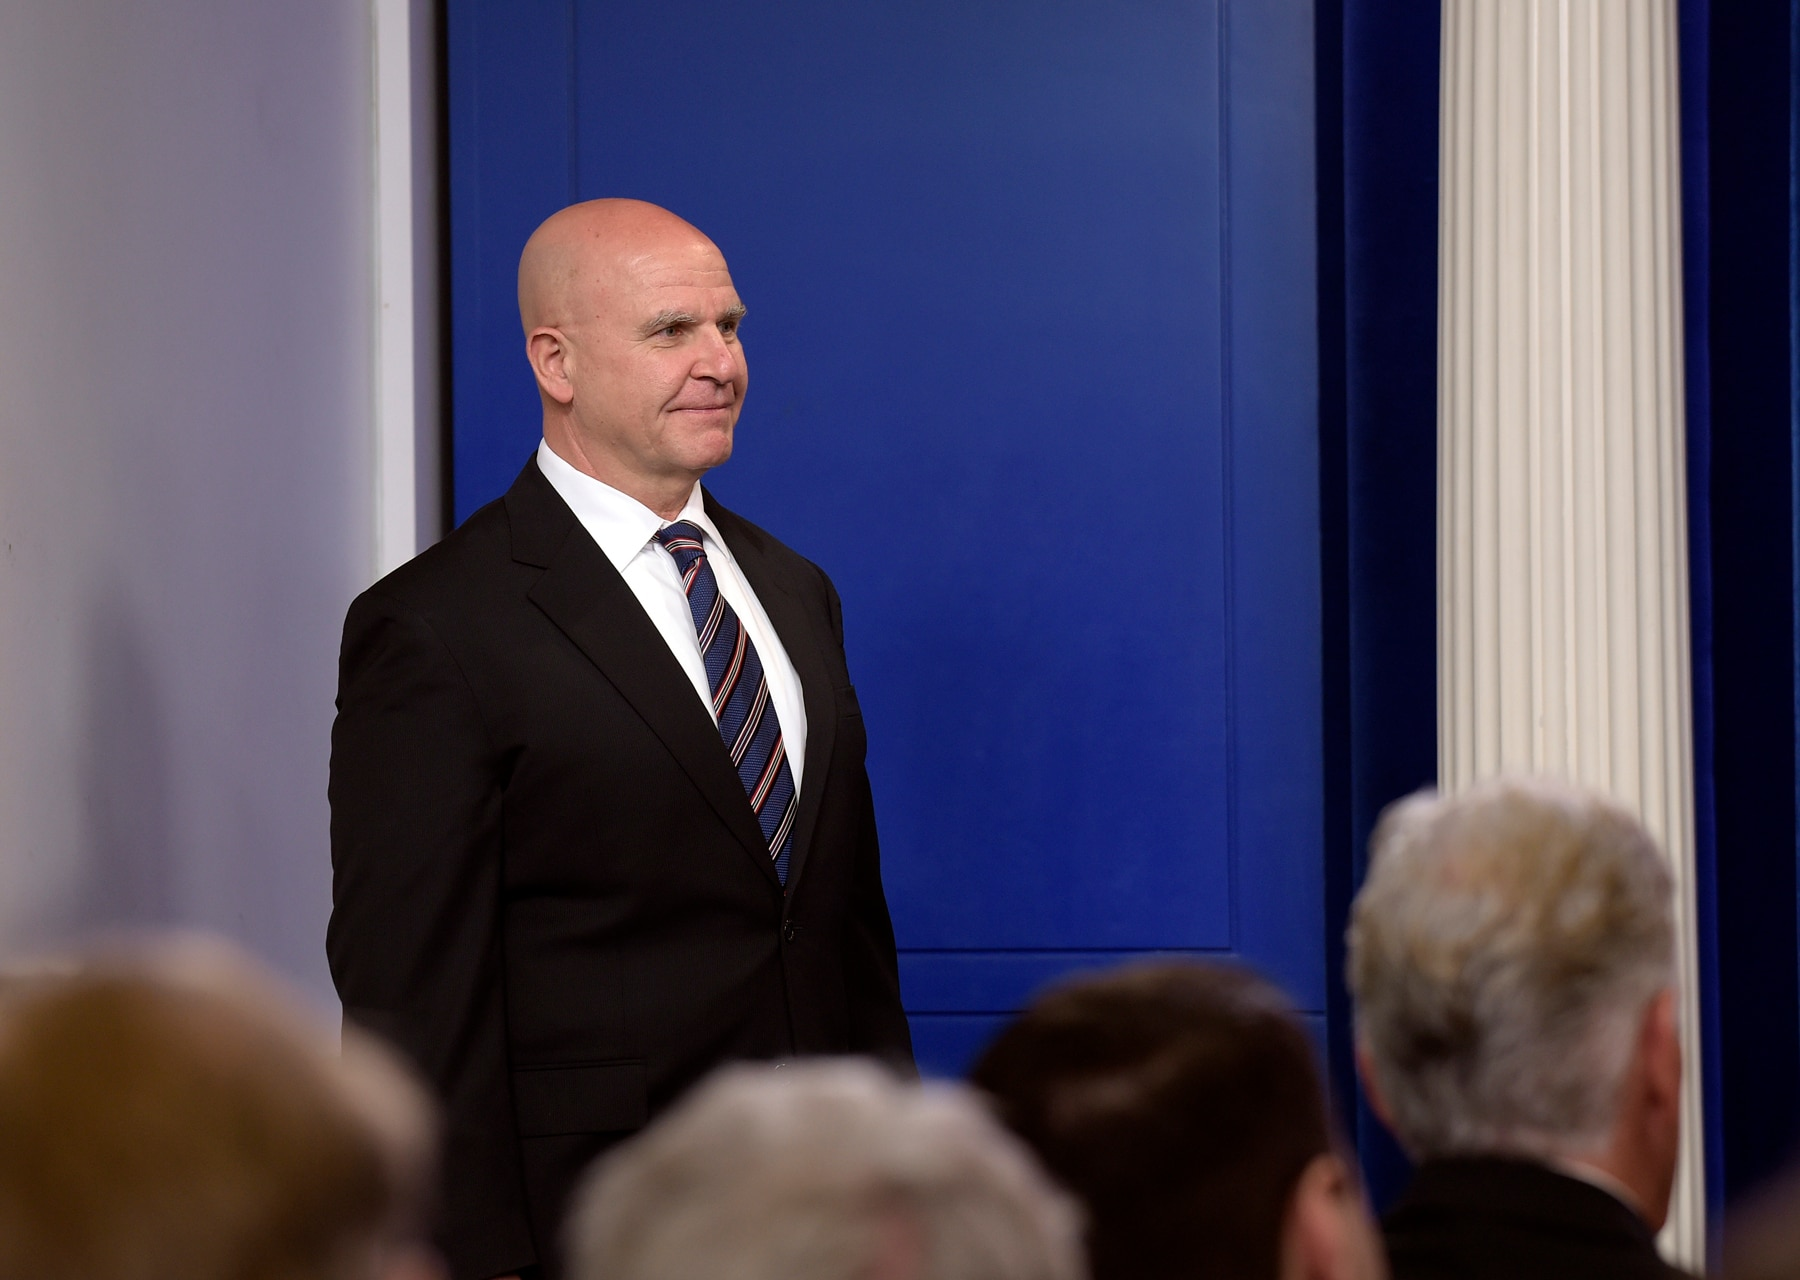 National Security Adviser H.R. McMaster, White House, press briefing